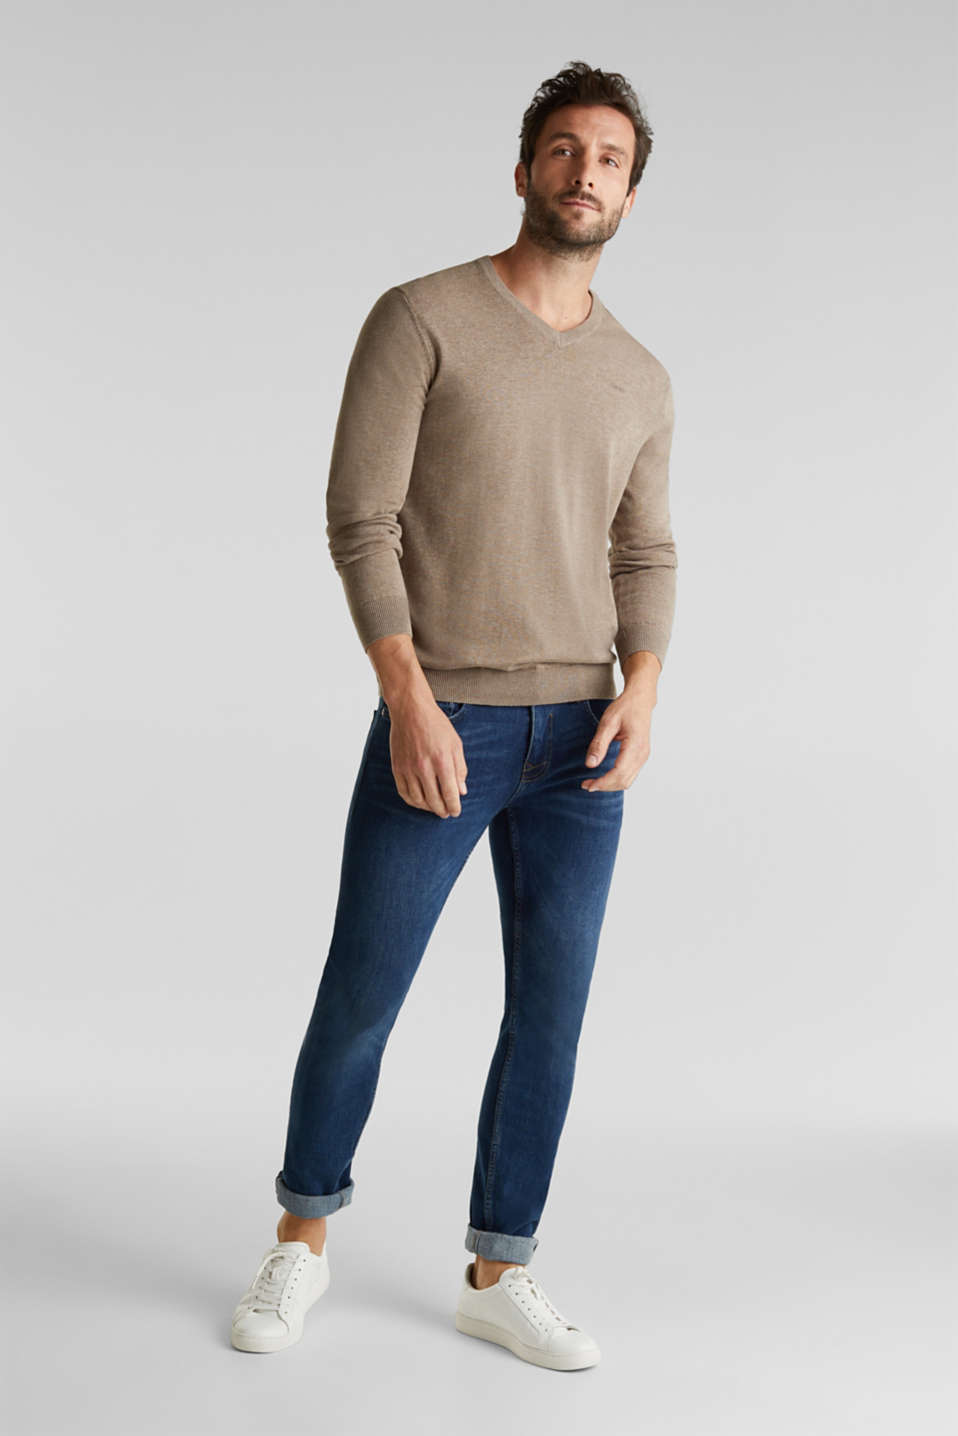 V-neck jumper, 100% cotton, BEIGE, detail image number 1